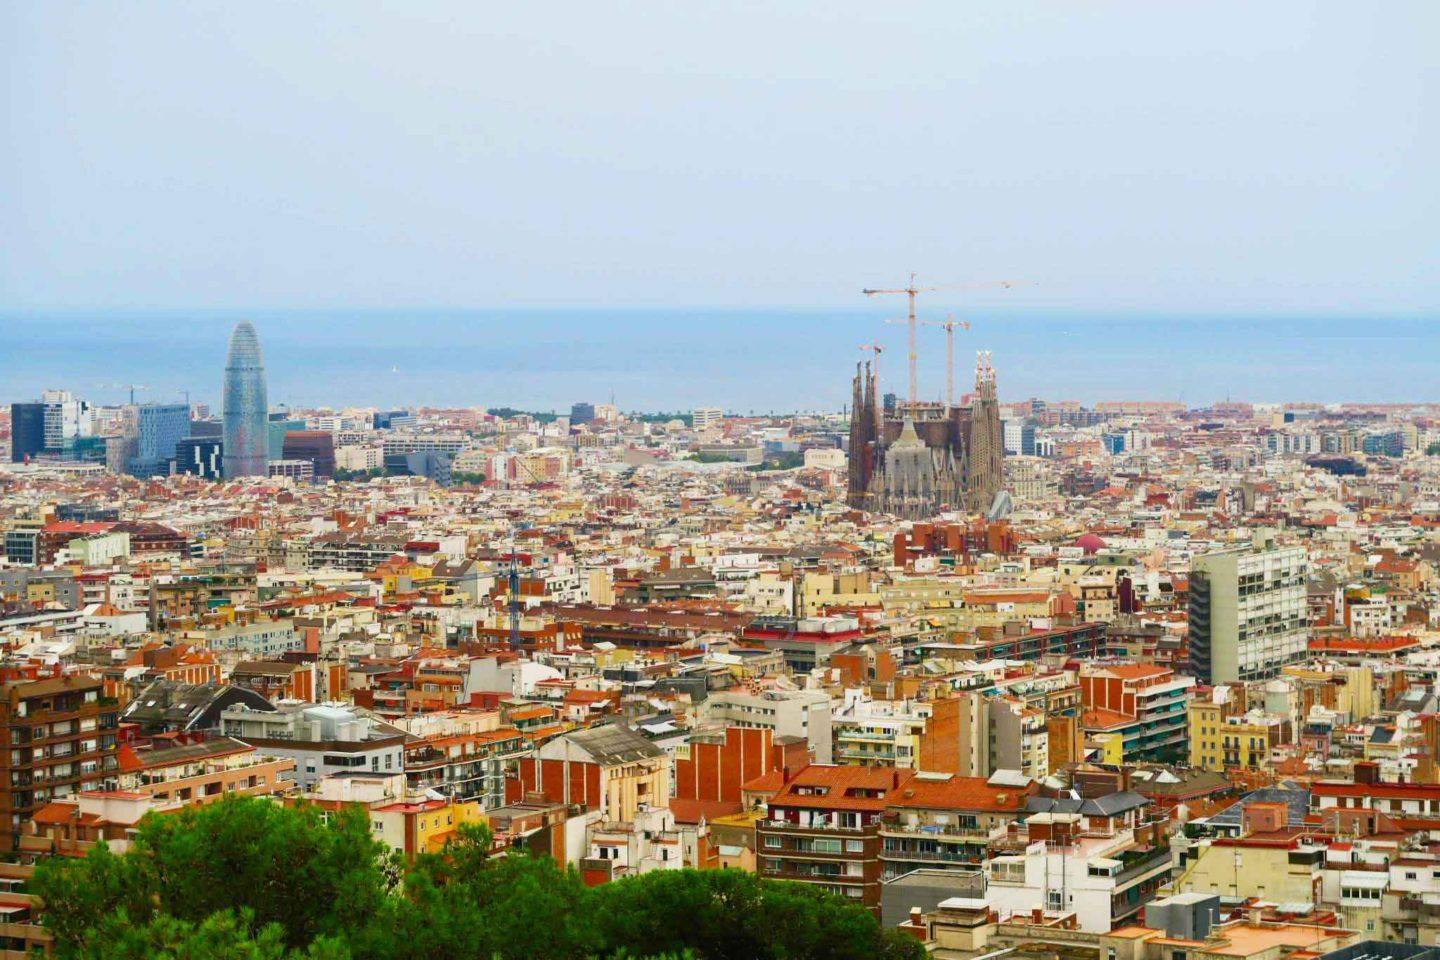 skyline of Barcelona city in Spain